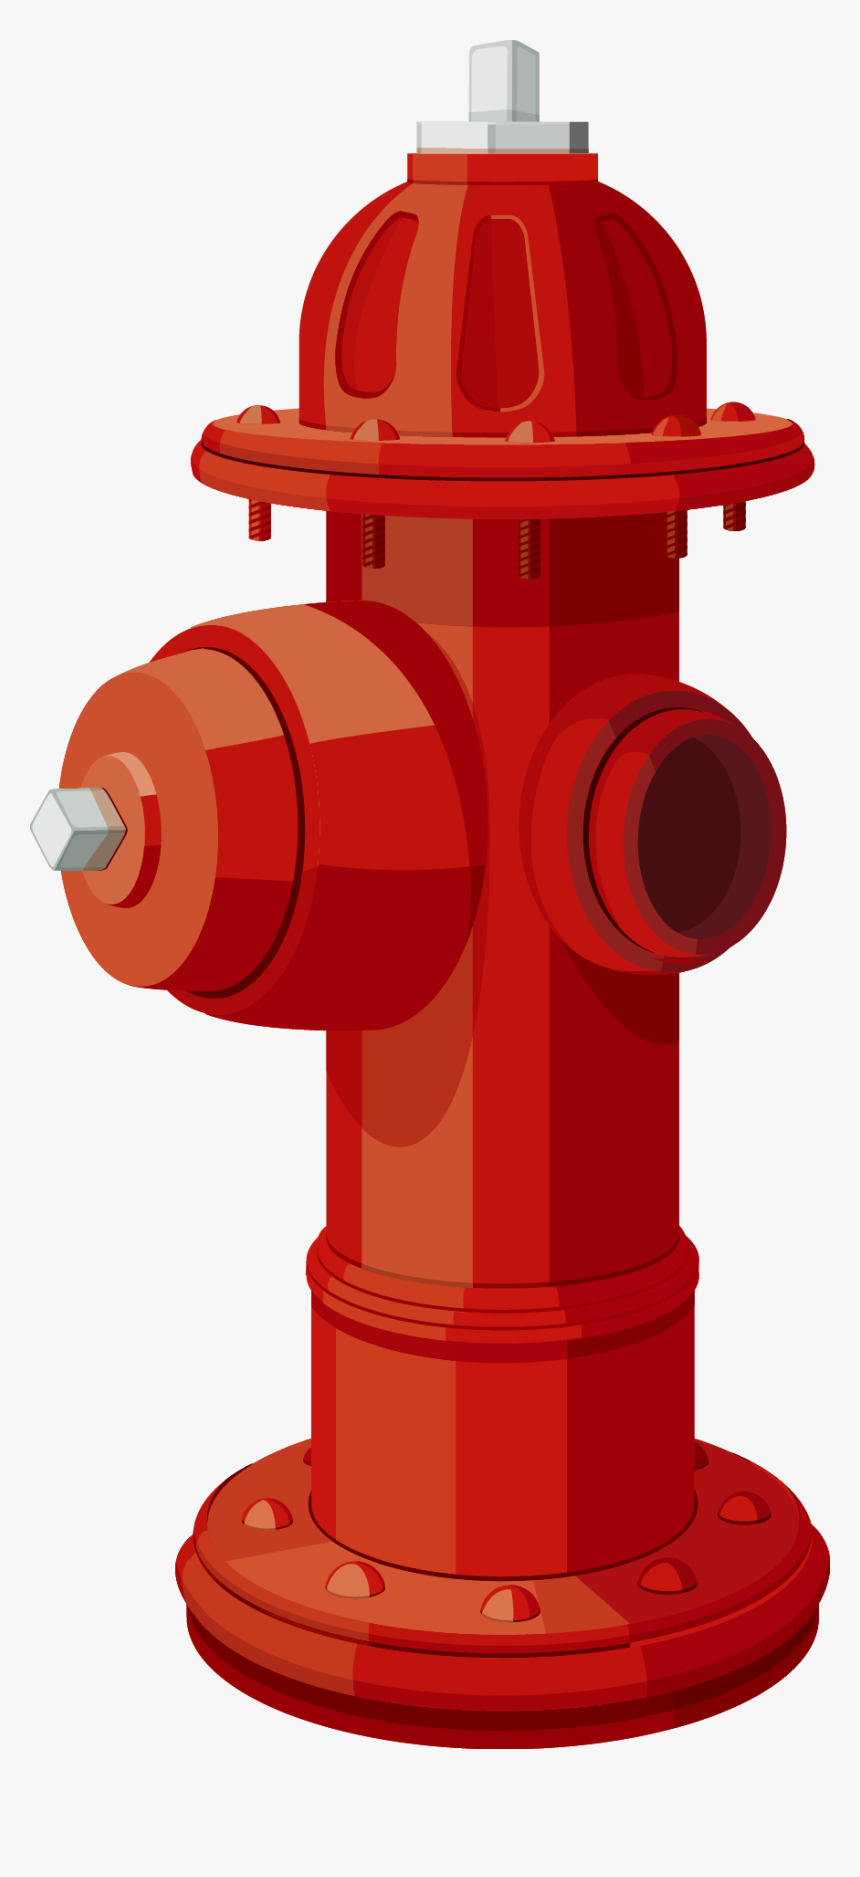 Transparent Fire Hydrant Clipart - Fire Hydrant Vector Png, Png Download, Free Download